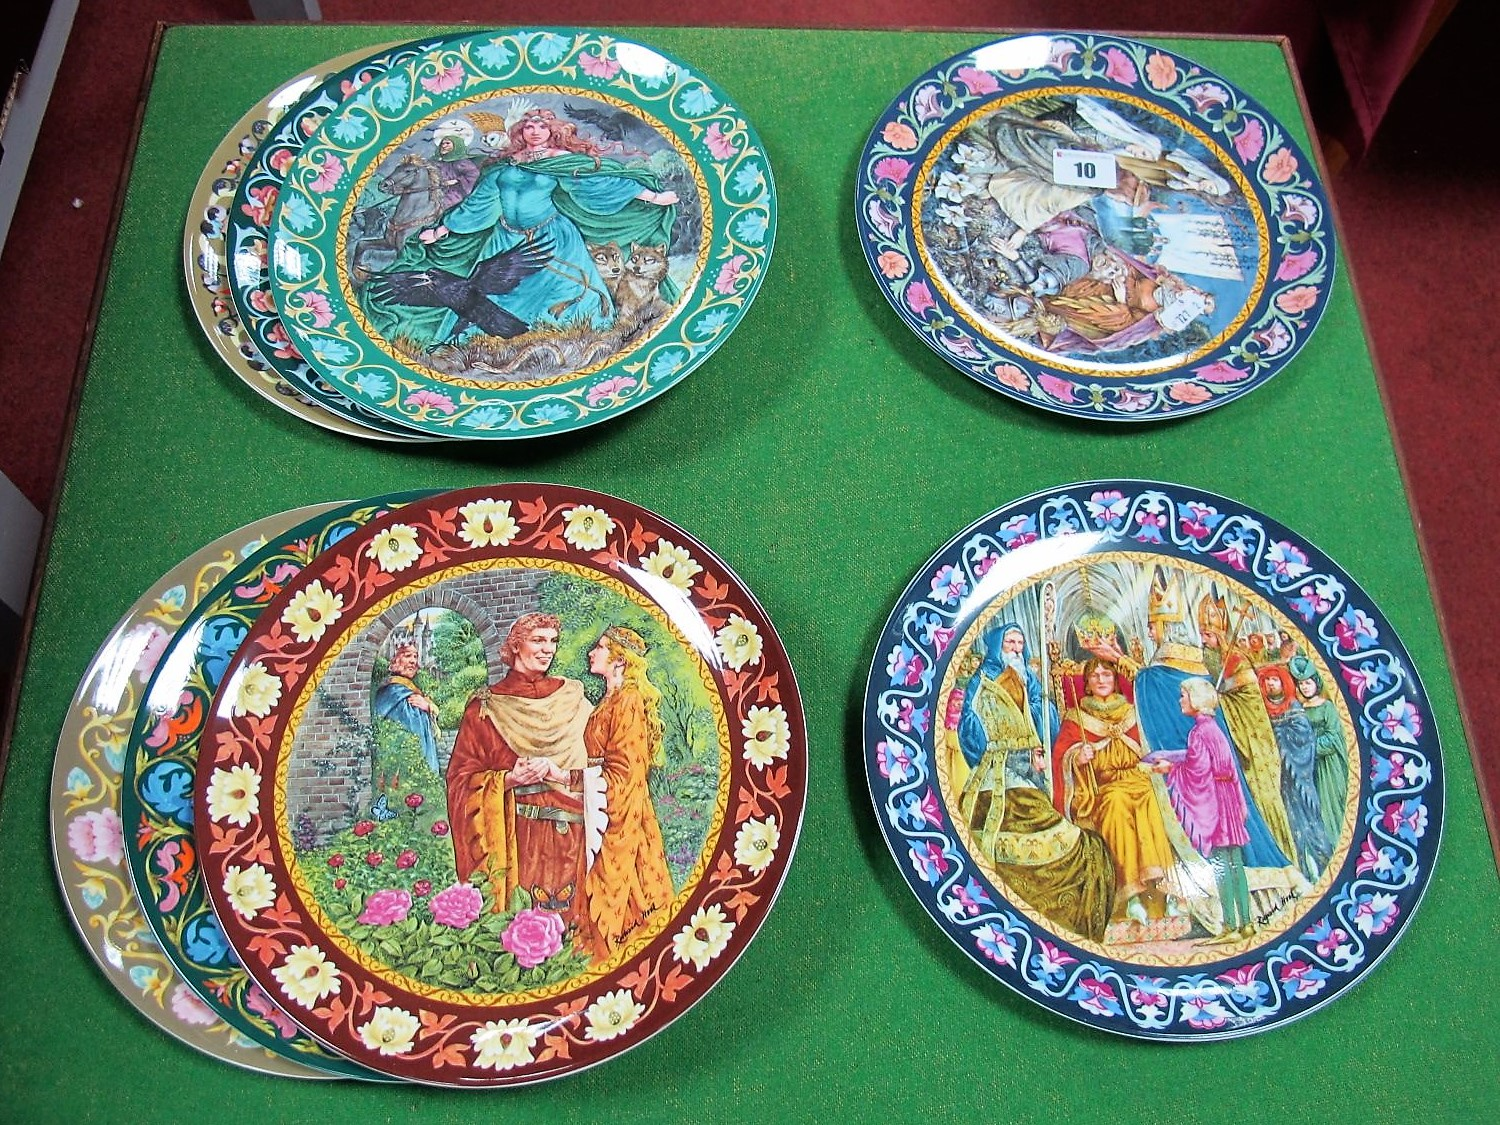 Lot 10 - Wedgwood: The Legend of King Arthur Plates, 1 to 8 from the series, boxed with certificates.